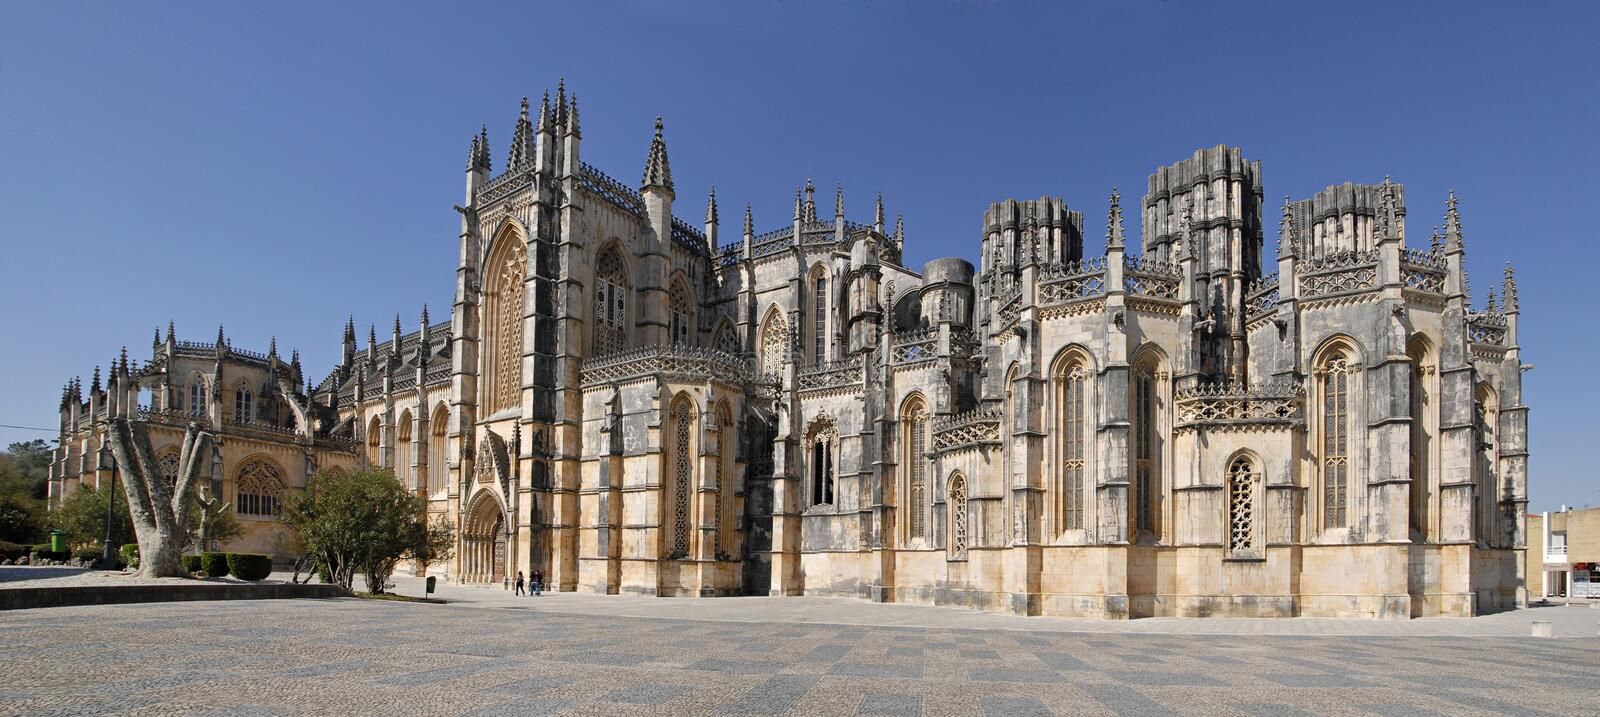 Panorama of Batalha gothic monastery in Portugal. royalty free stock photos